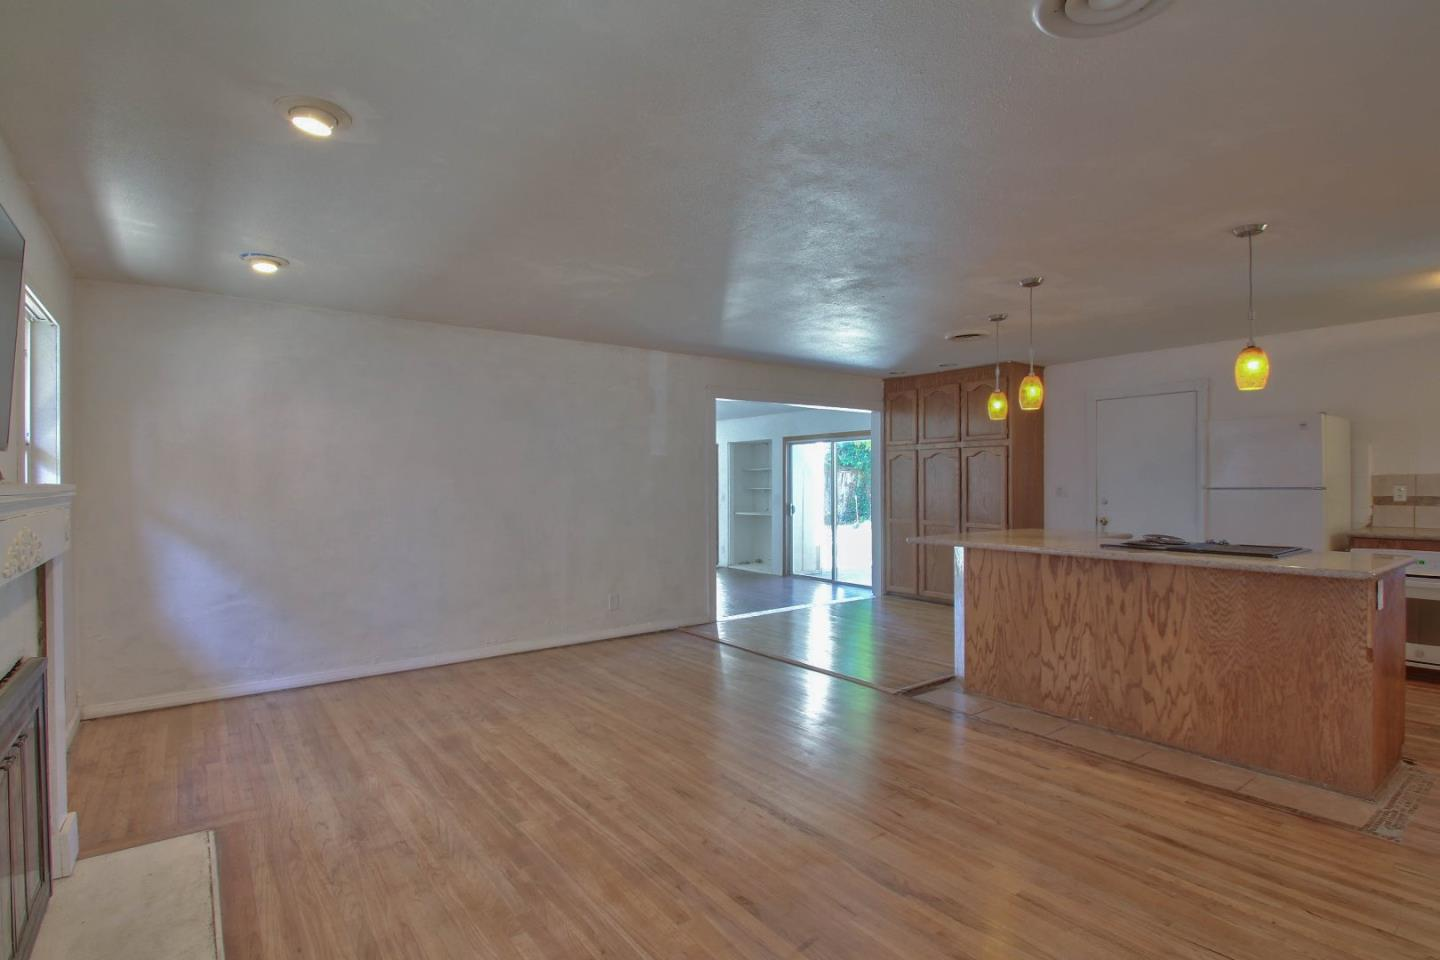 Additional photo for property listing at 1334 Riker Street  Salinas, California 93901 Estados Unidos